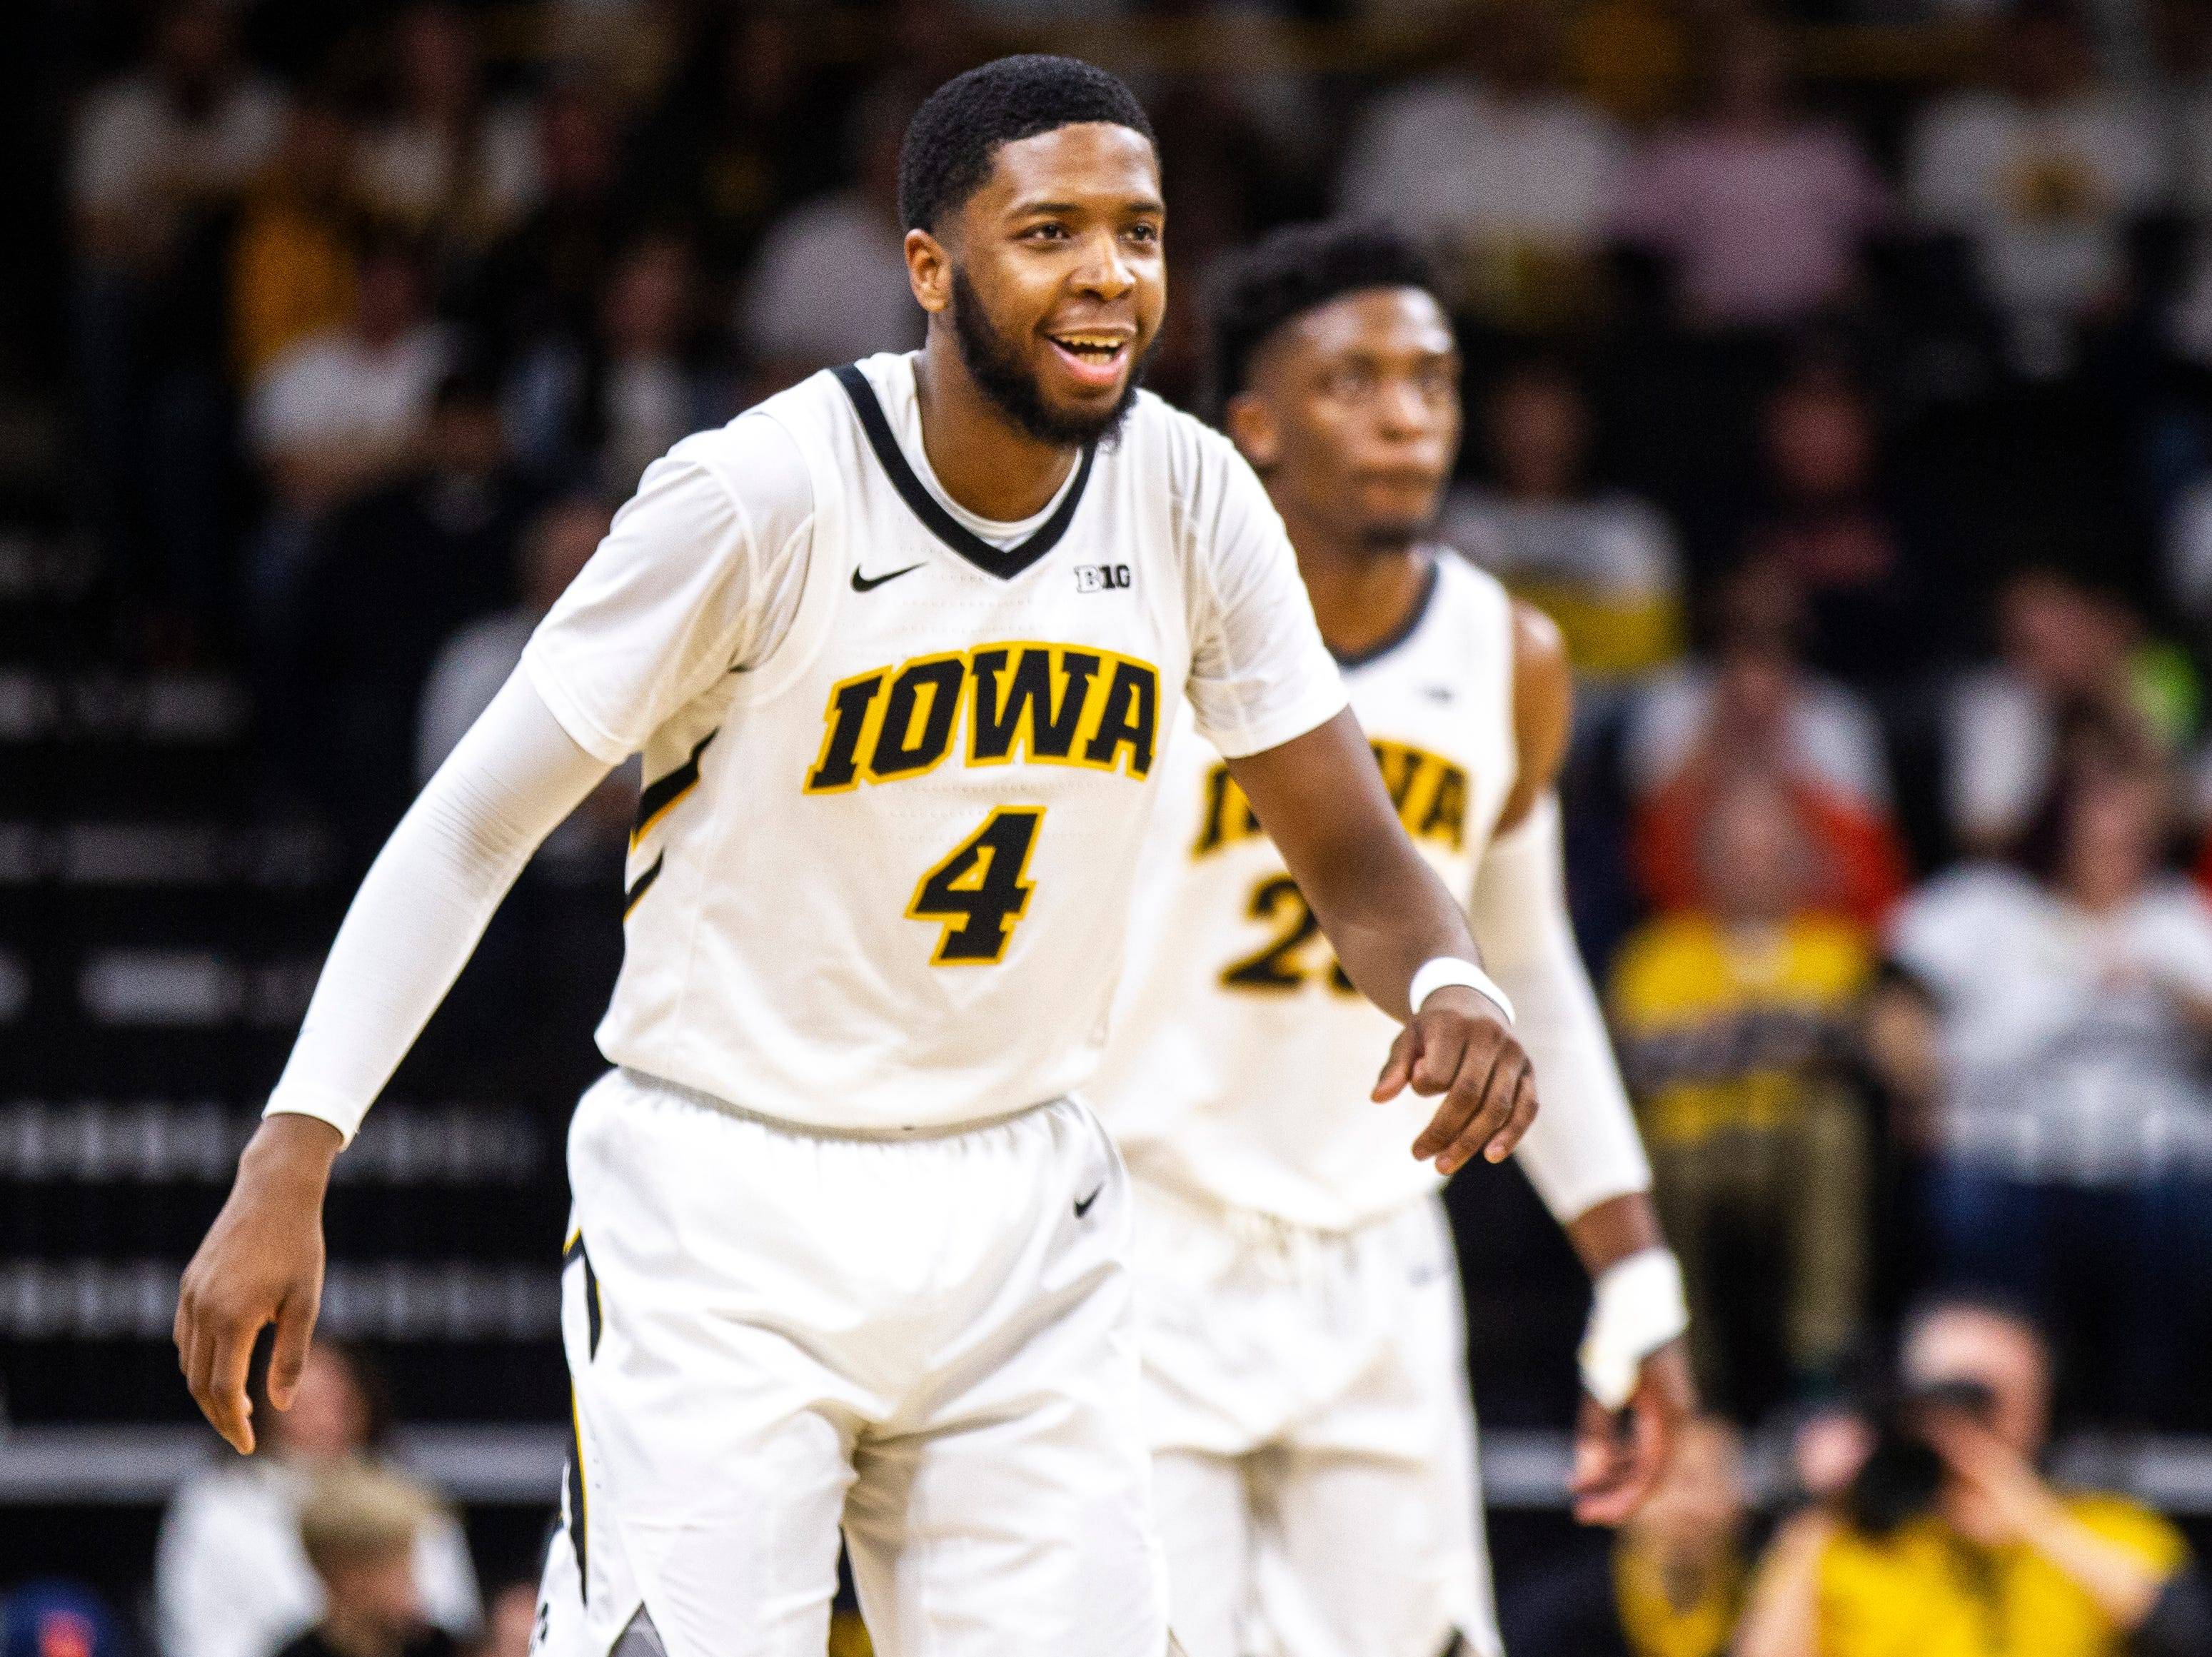 Iowa guard Isaiah Moss (4) smiles during a NCAA Big Ten Conference men's basketball game on Sunday, Jan. 20, 2019, at Carver-Hawkeye Arena in Iowa City, Iowa.